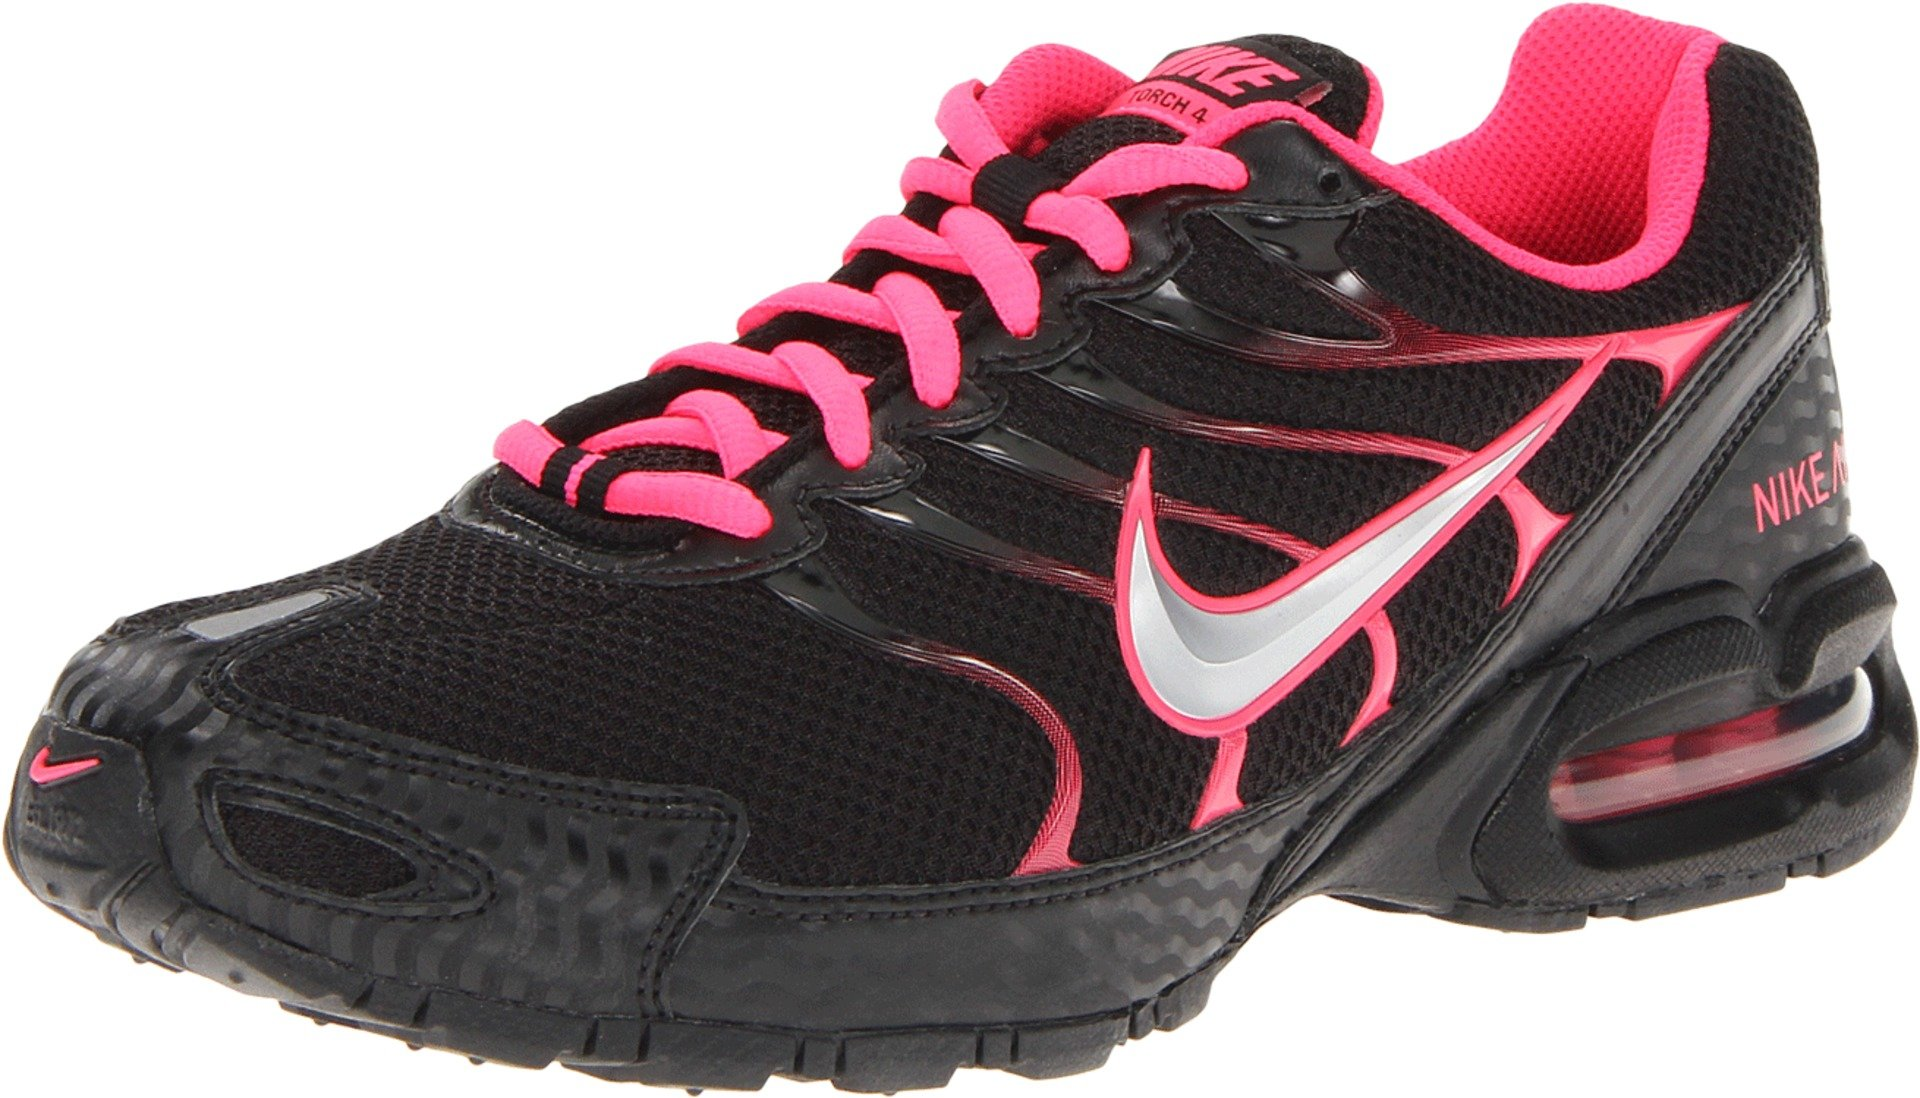 dd7be7f67fe Nike Womens Air Max Torch 4 Running Shoes Black Silver Pink Flash 7.5